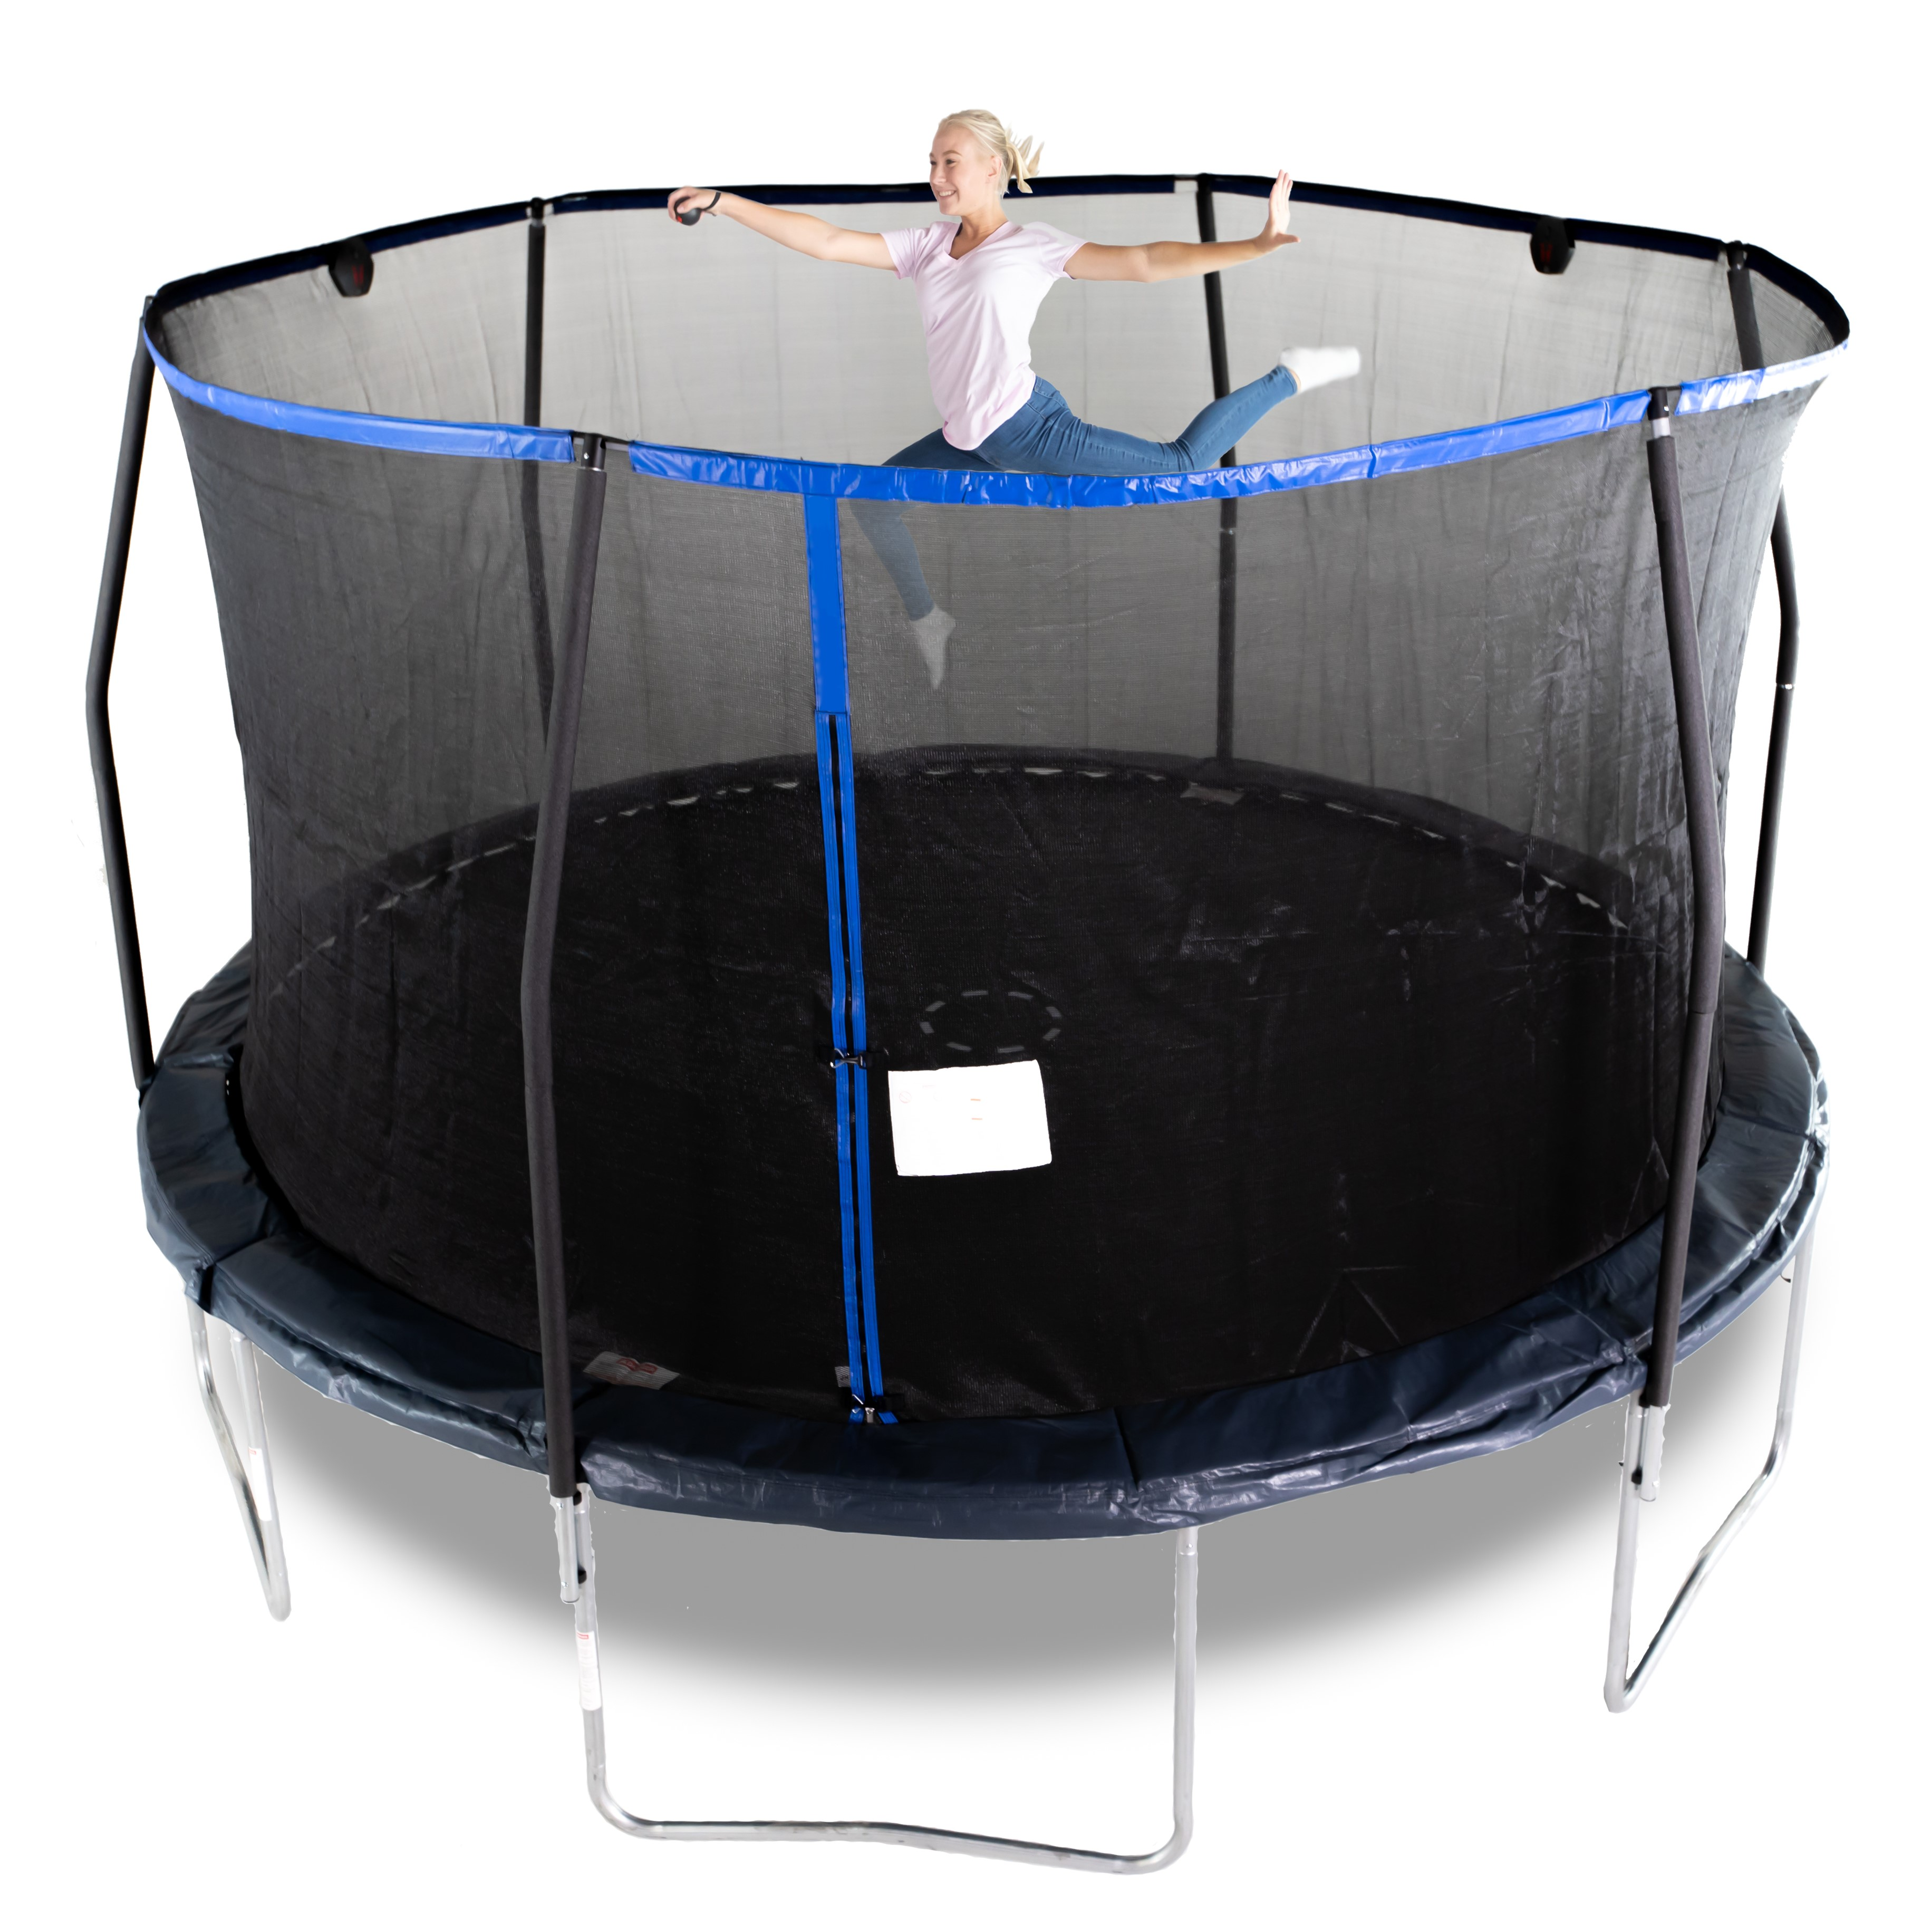 Bounce Pro 14-Foot Trampoline, Electronic Shooter Laser Game, Midnight Blue